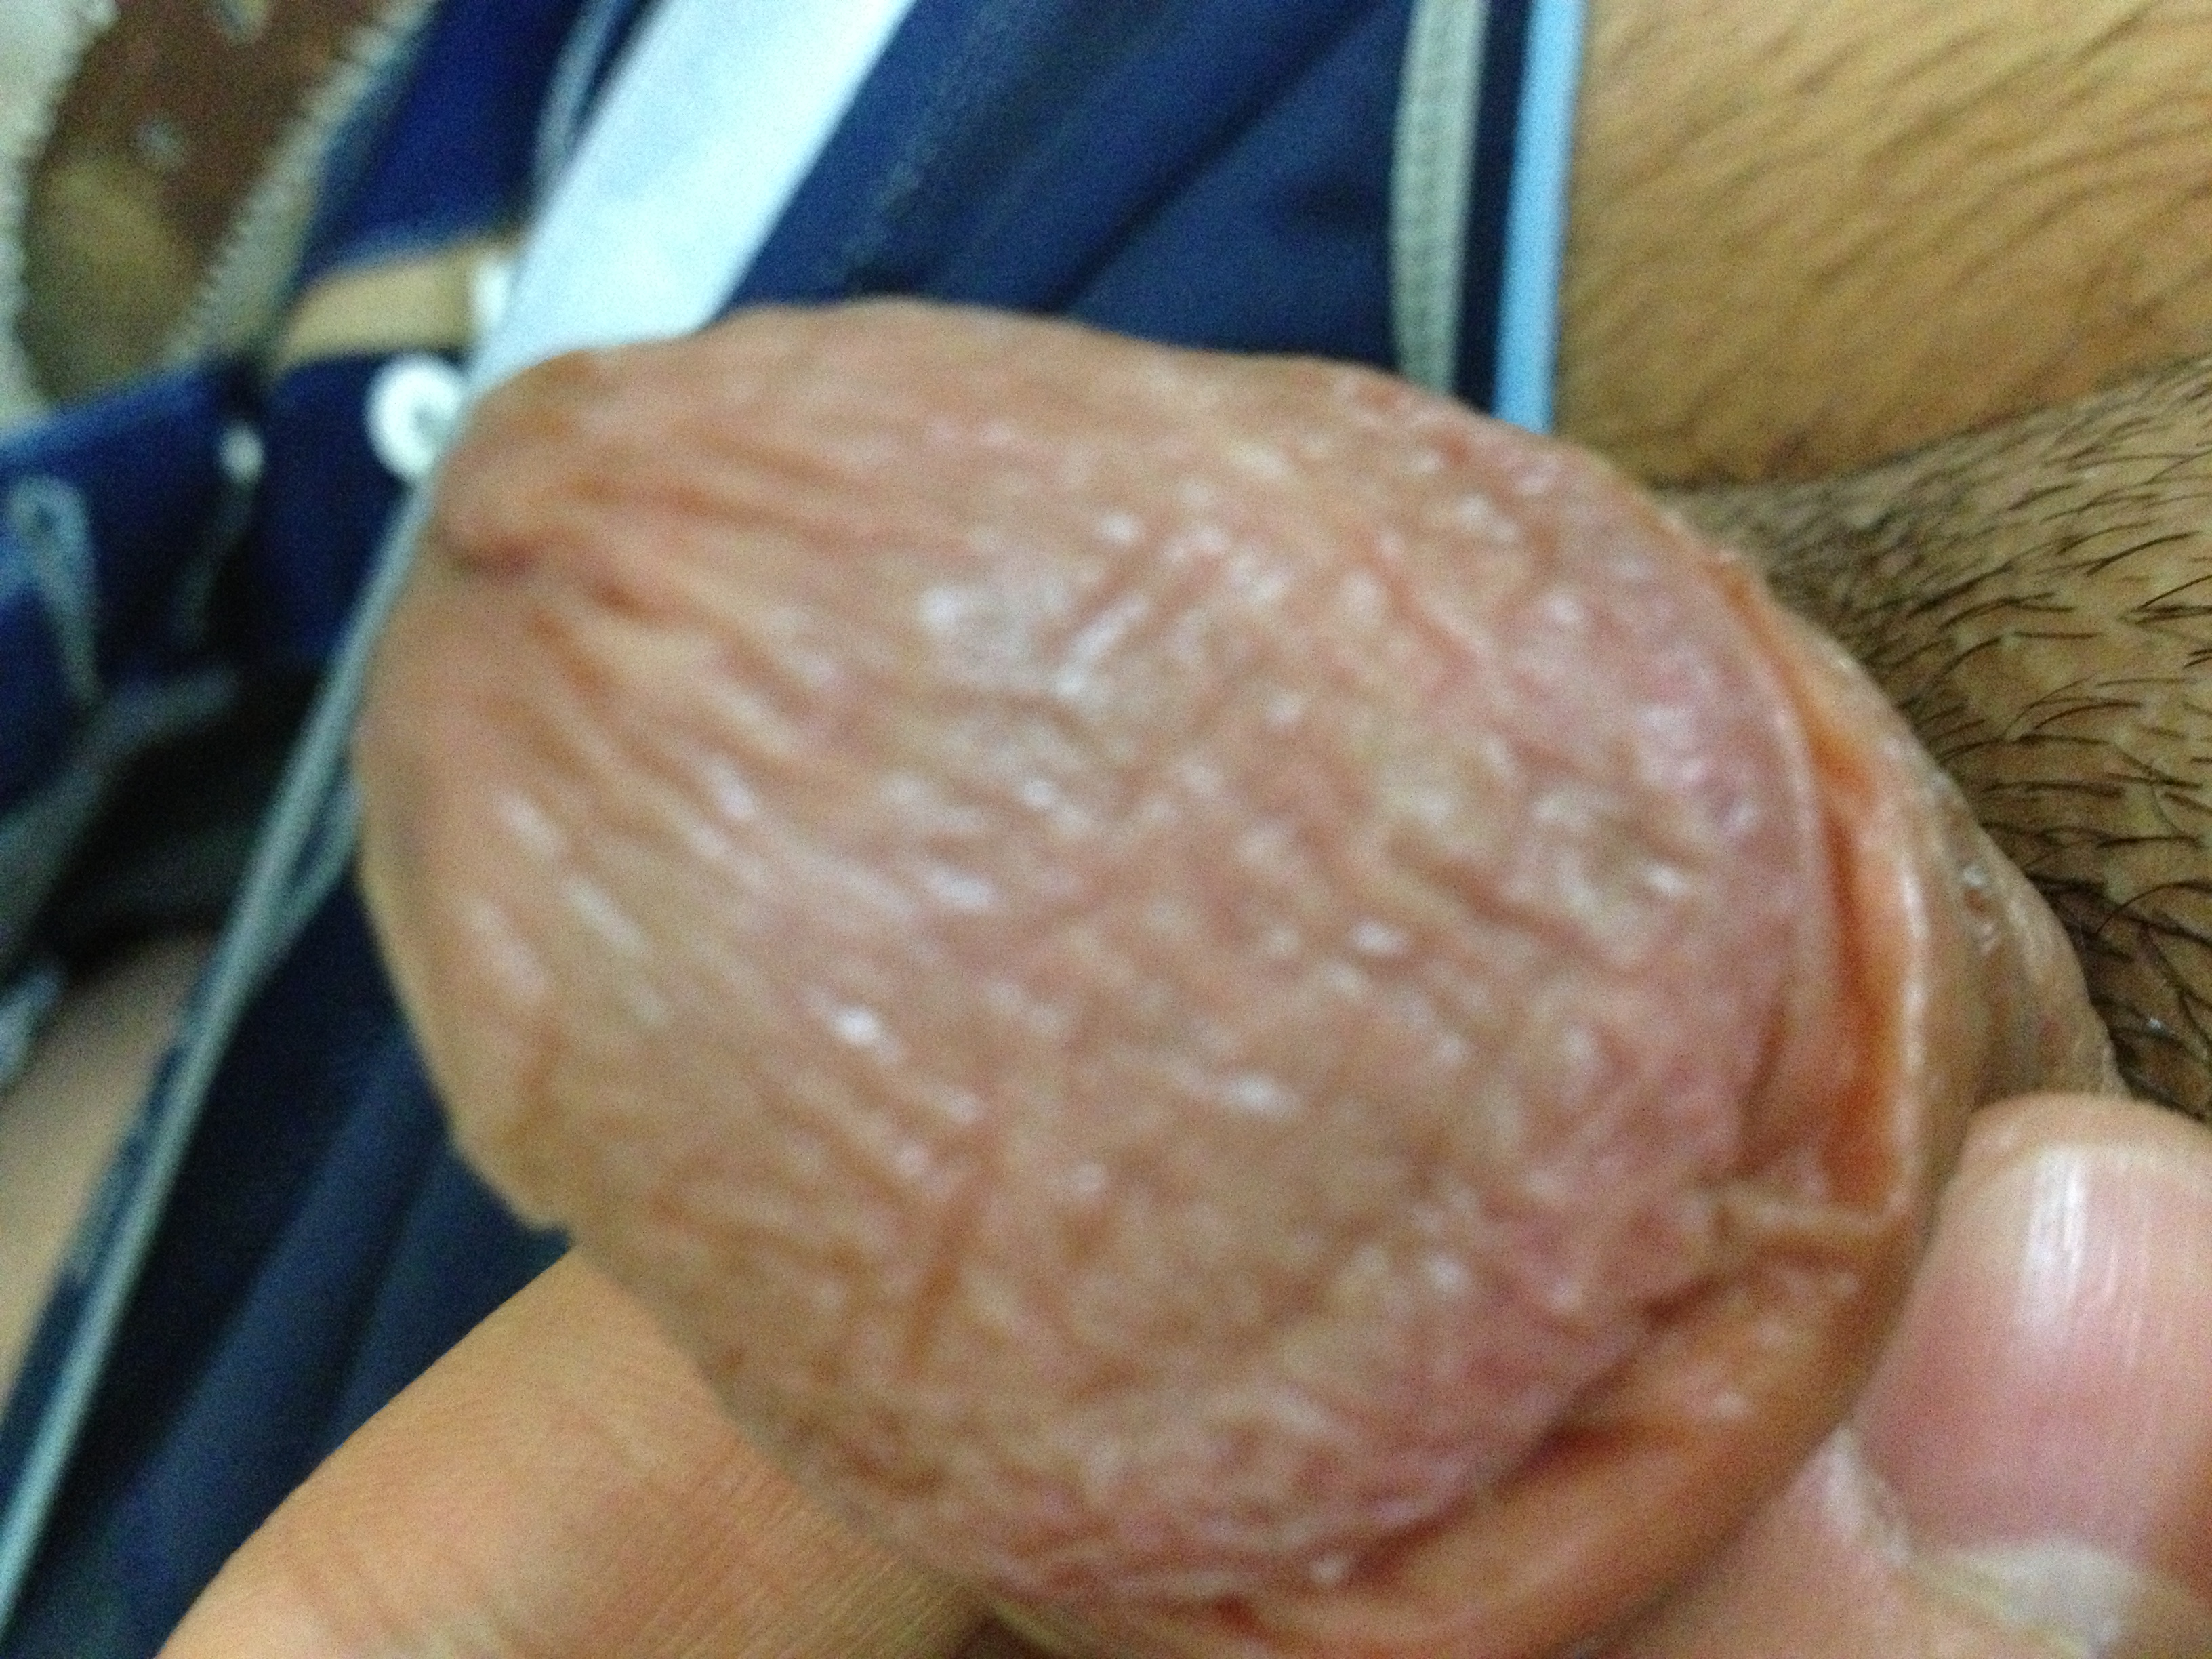 Peeling skin on penis head